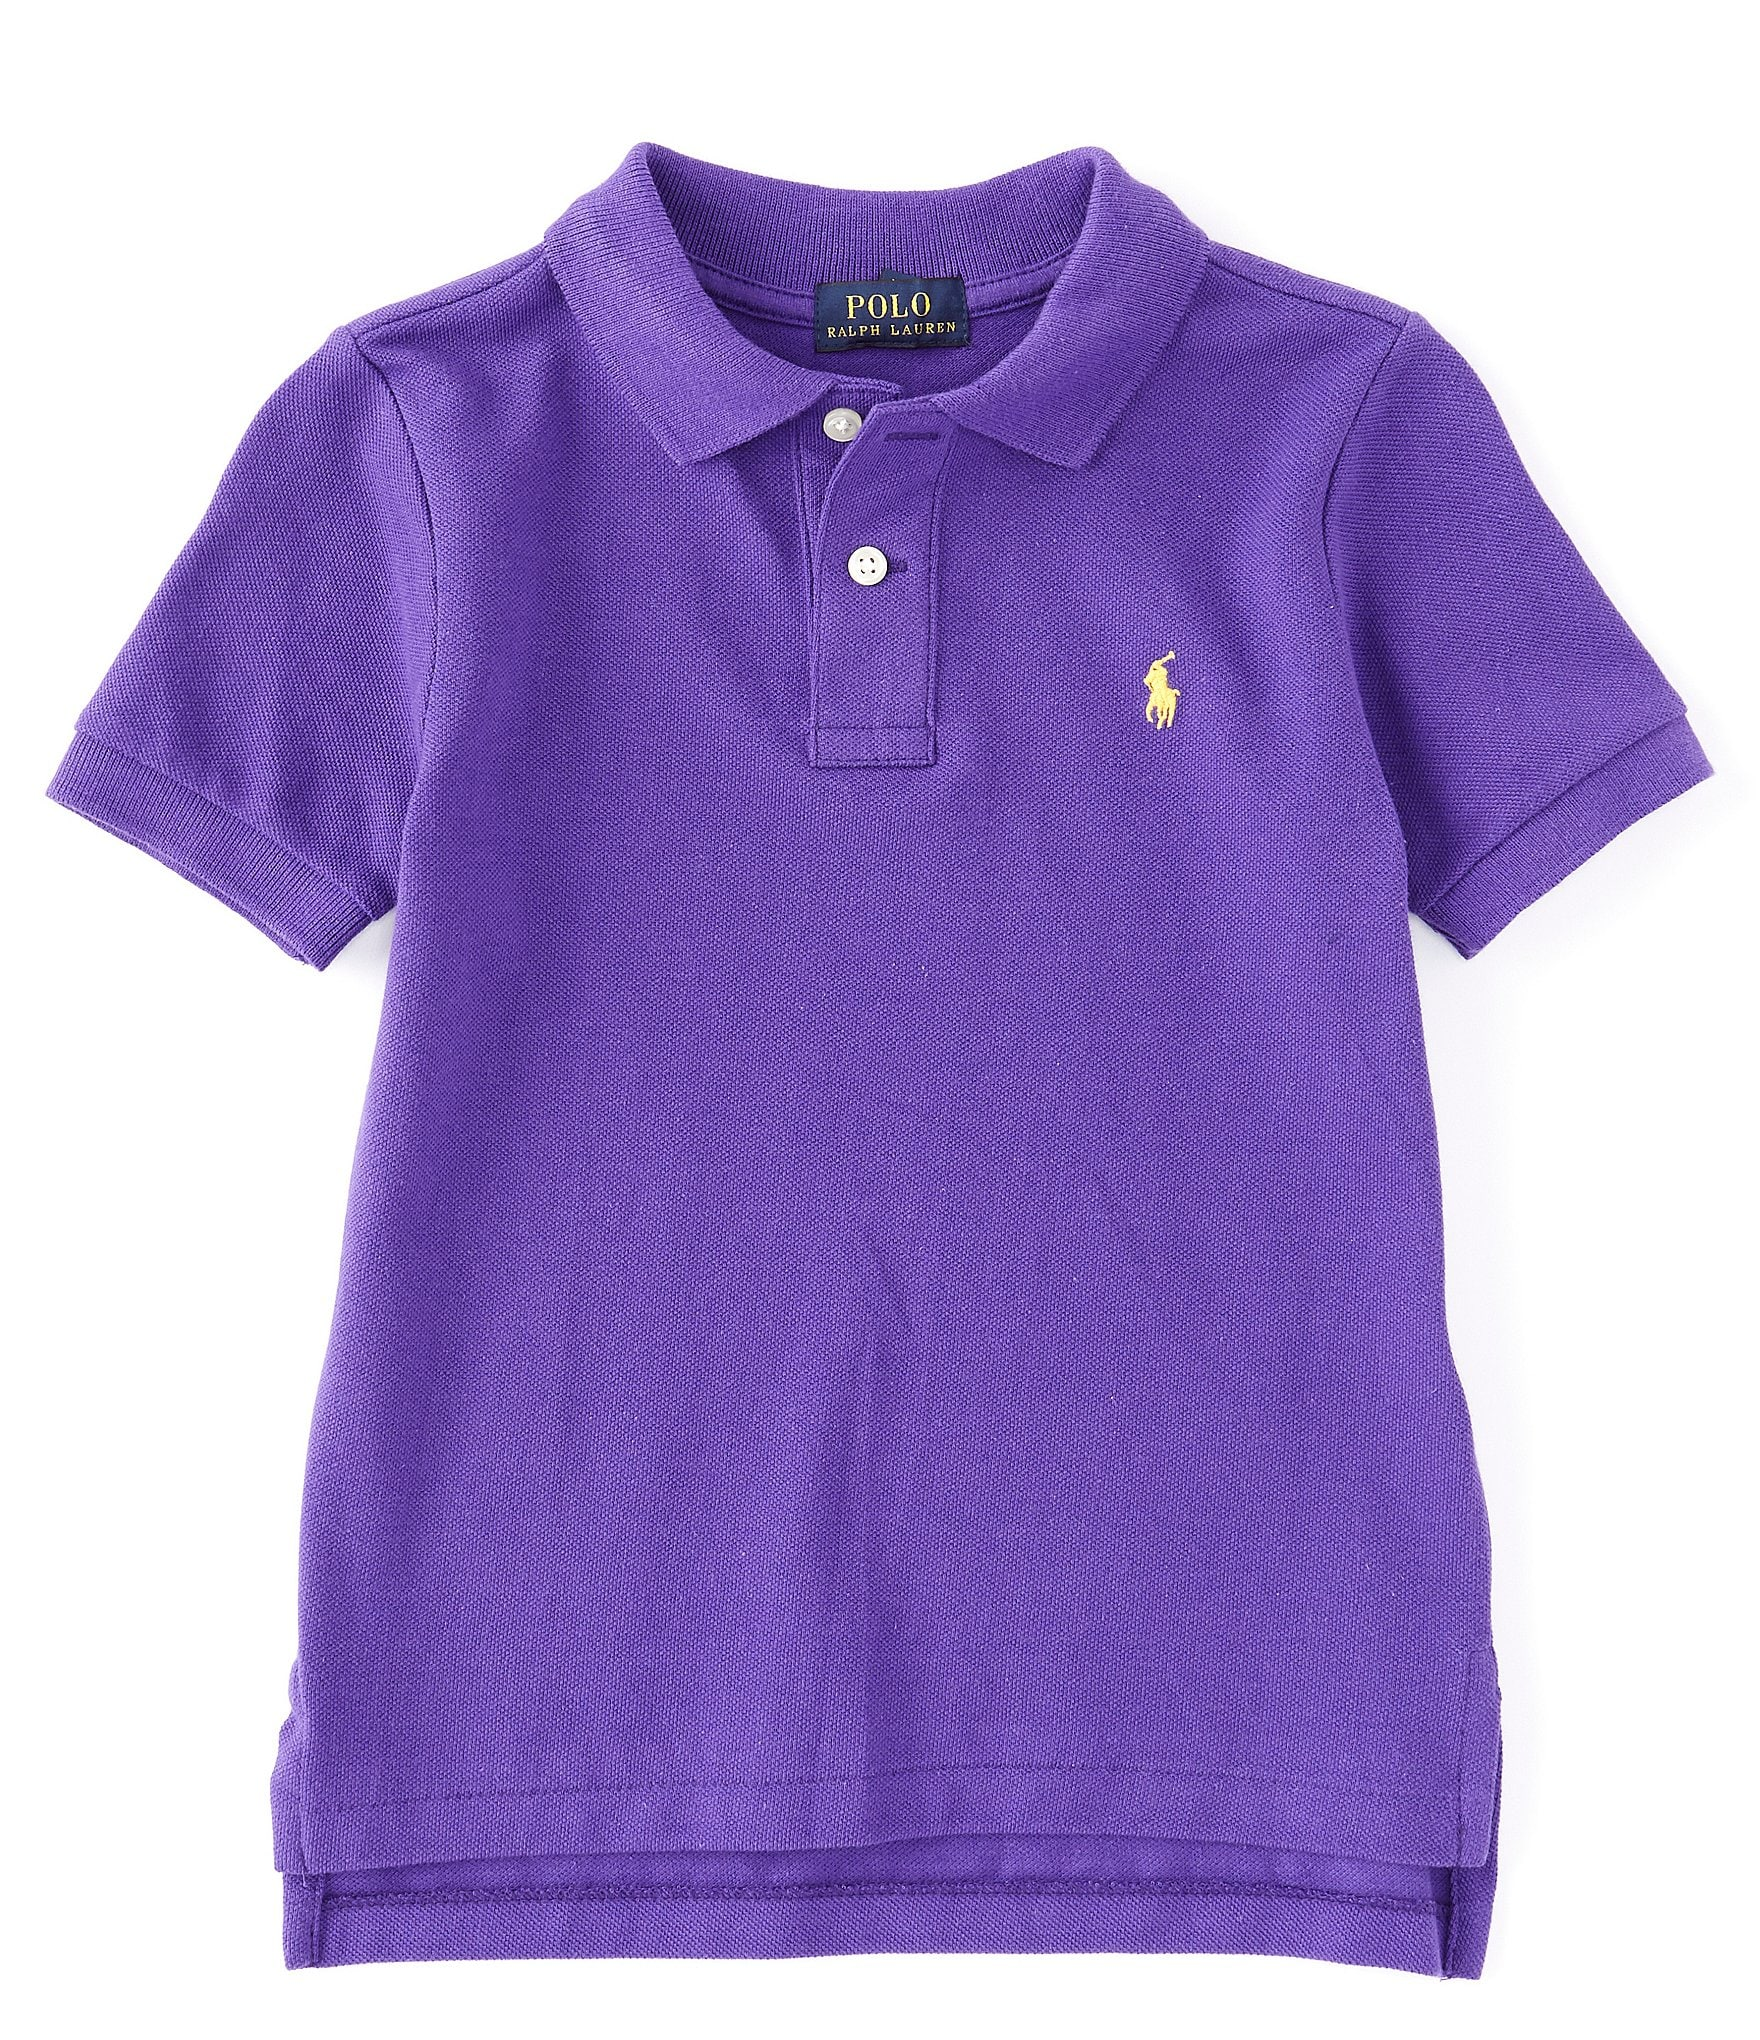 Purple and gold diaper shirt